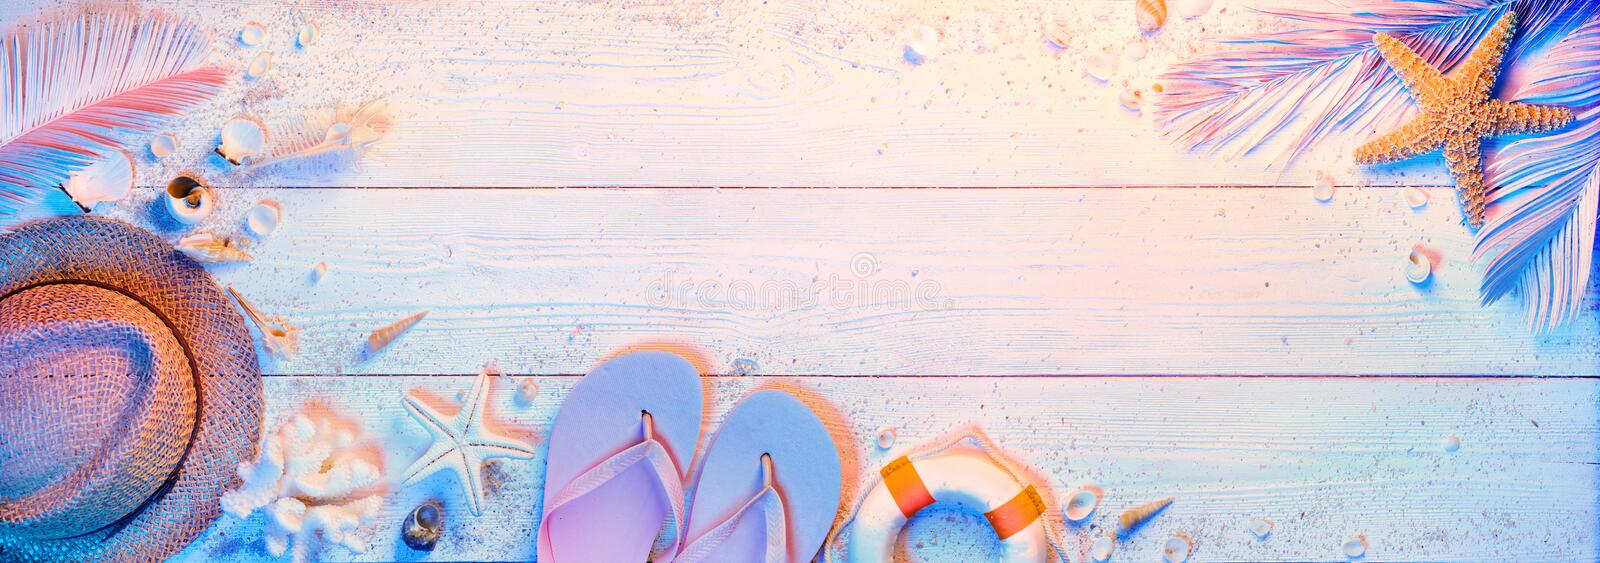 Summer Minimal Design With Beach Accessories stock image